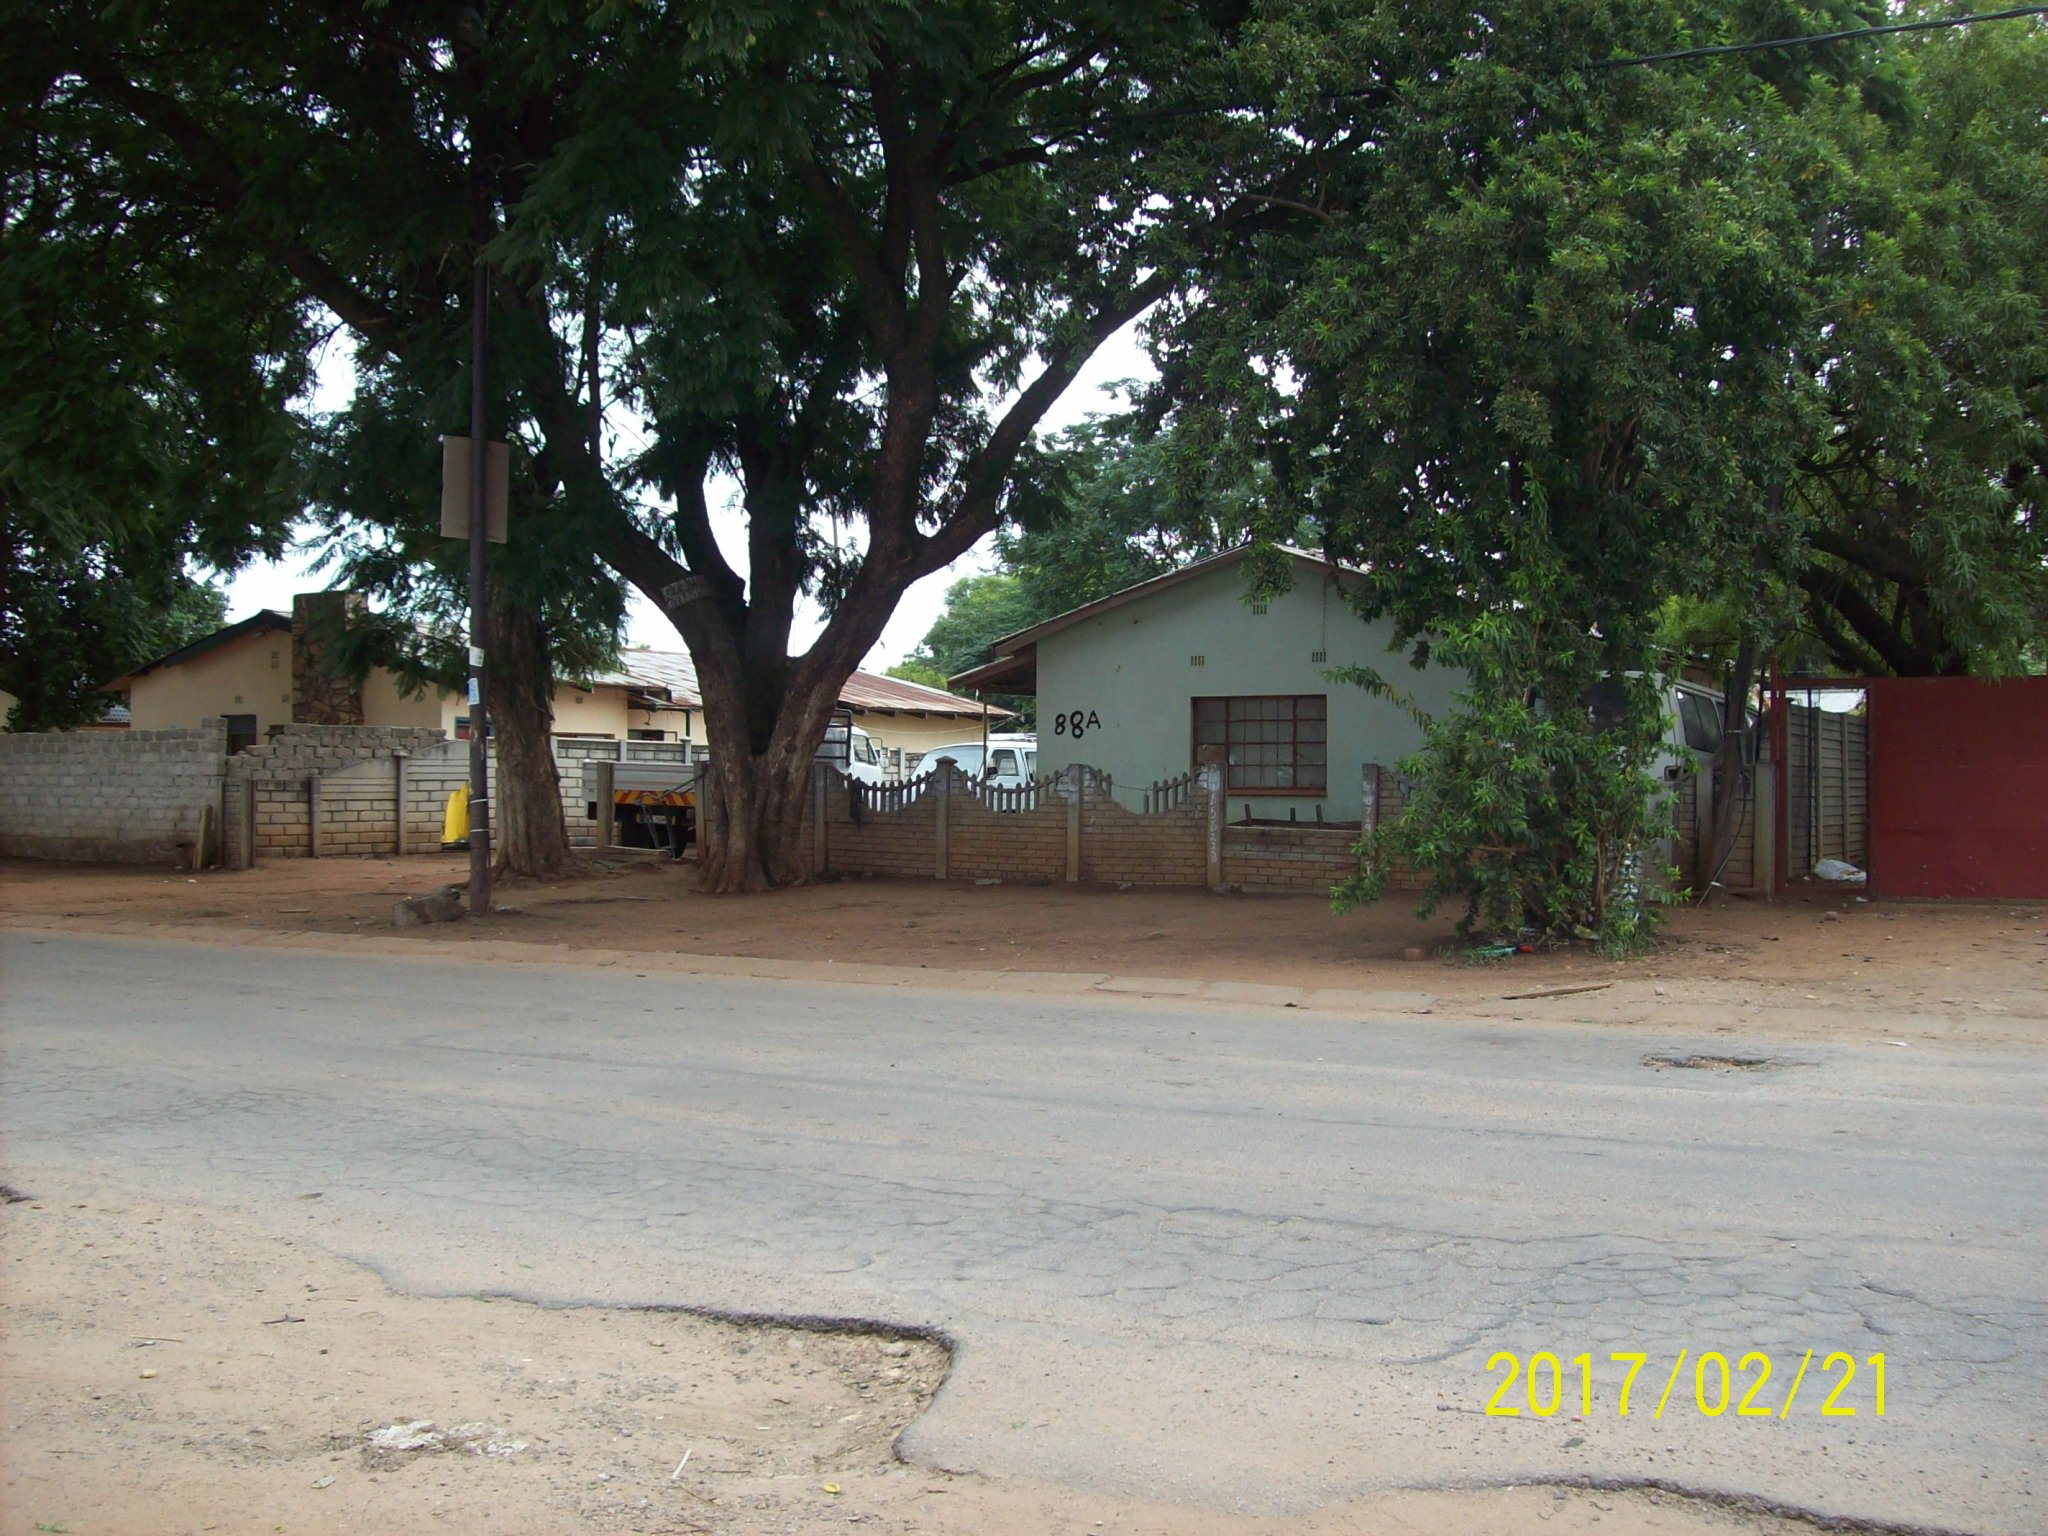 Commerical property for sale in Polokwane